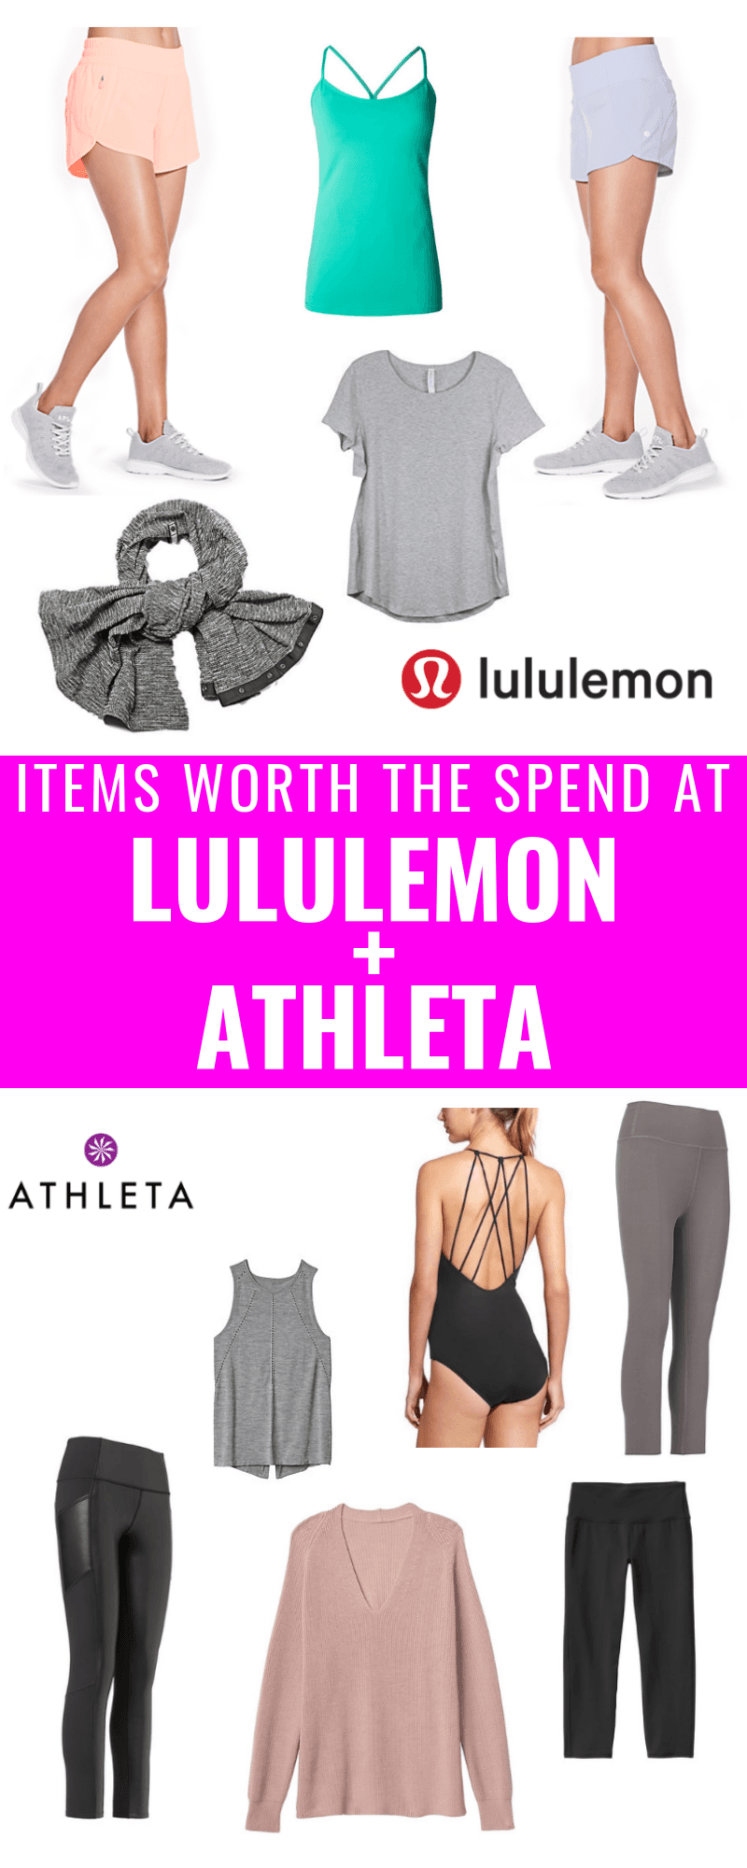 Items Worth The Spend At Lululemon + Athleta